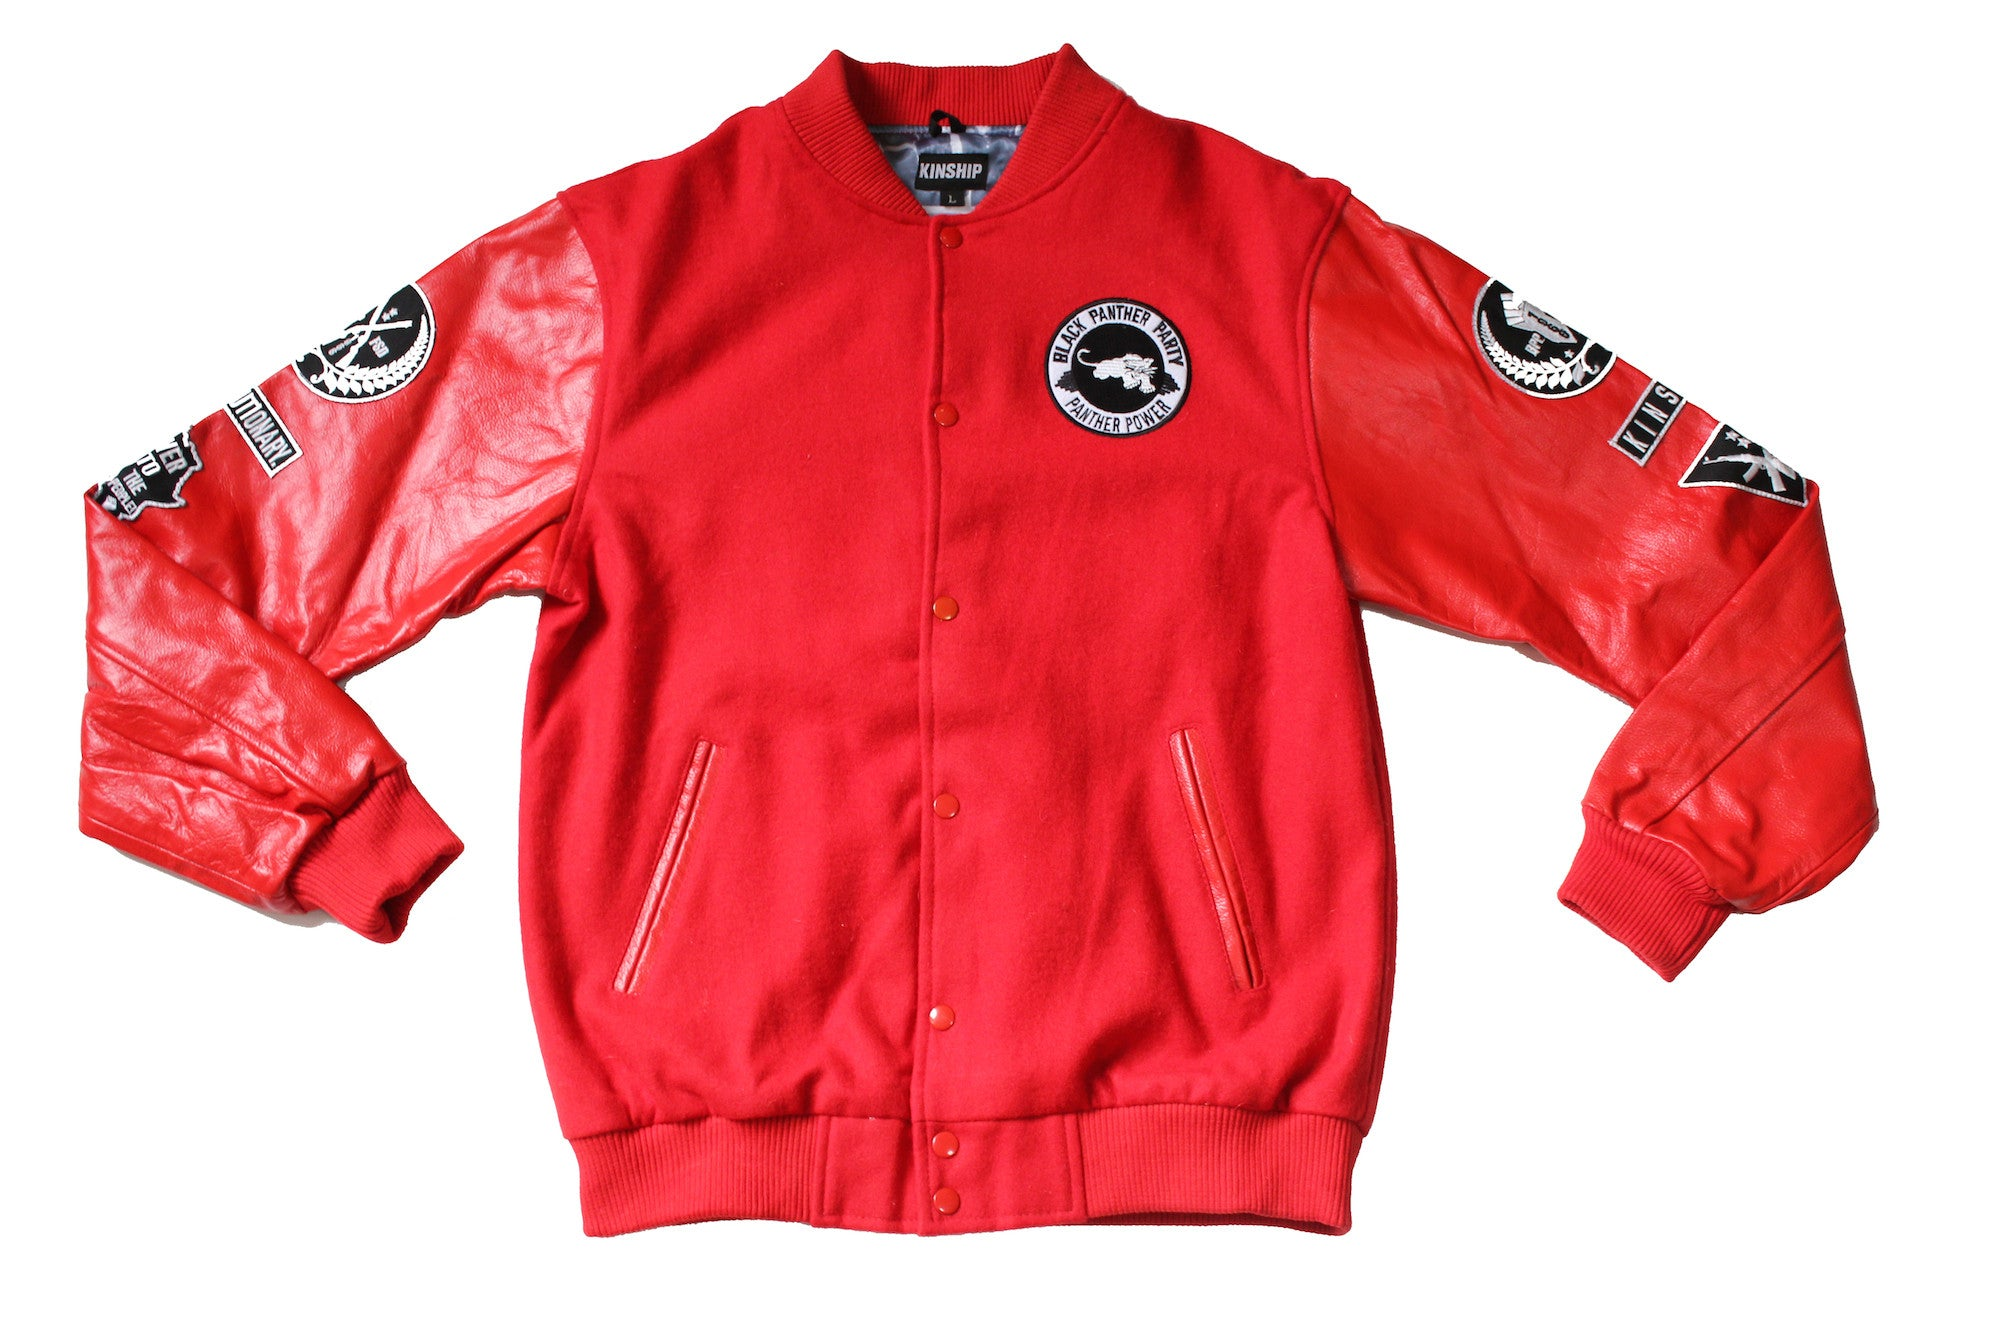 Black Panther Varsity Jacket in Red Contrast